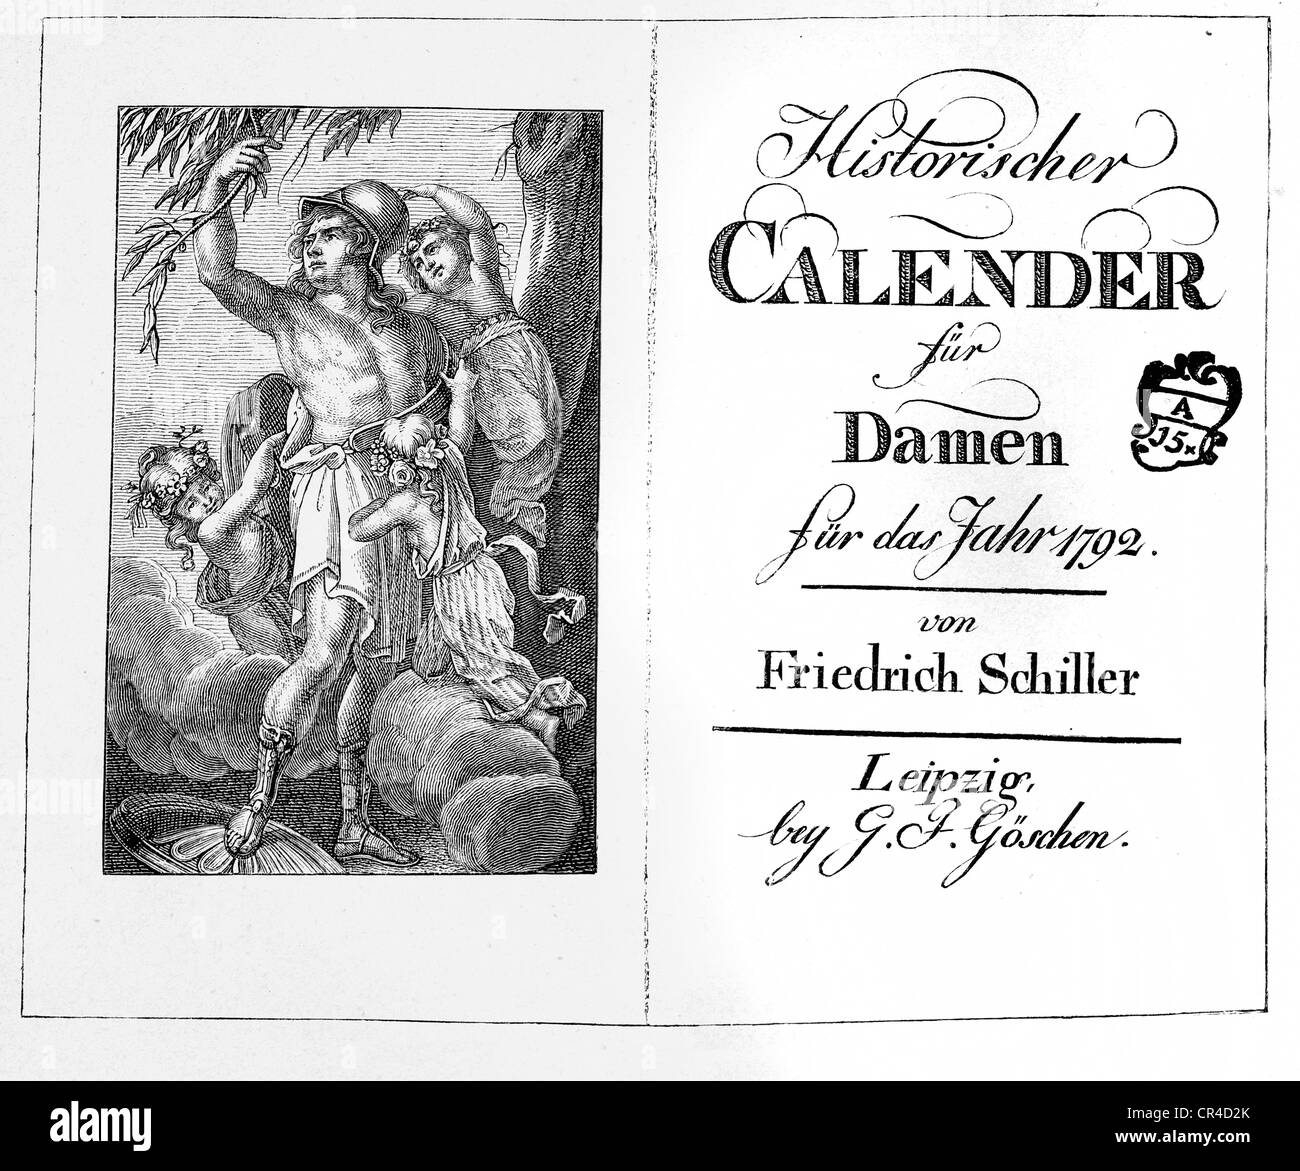 Front page of 'Historischer Kalender fuer Damen, 1792', historical diary for ladies, edited by Fr. Schiller - Stock Image